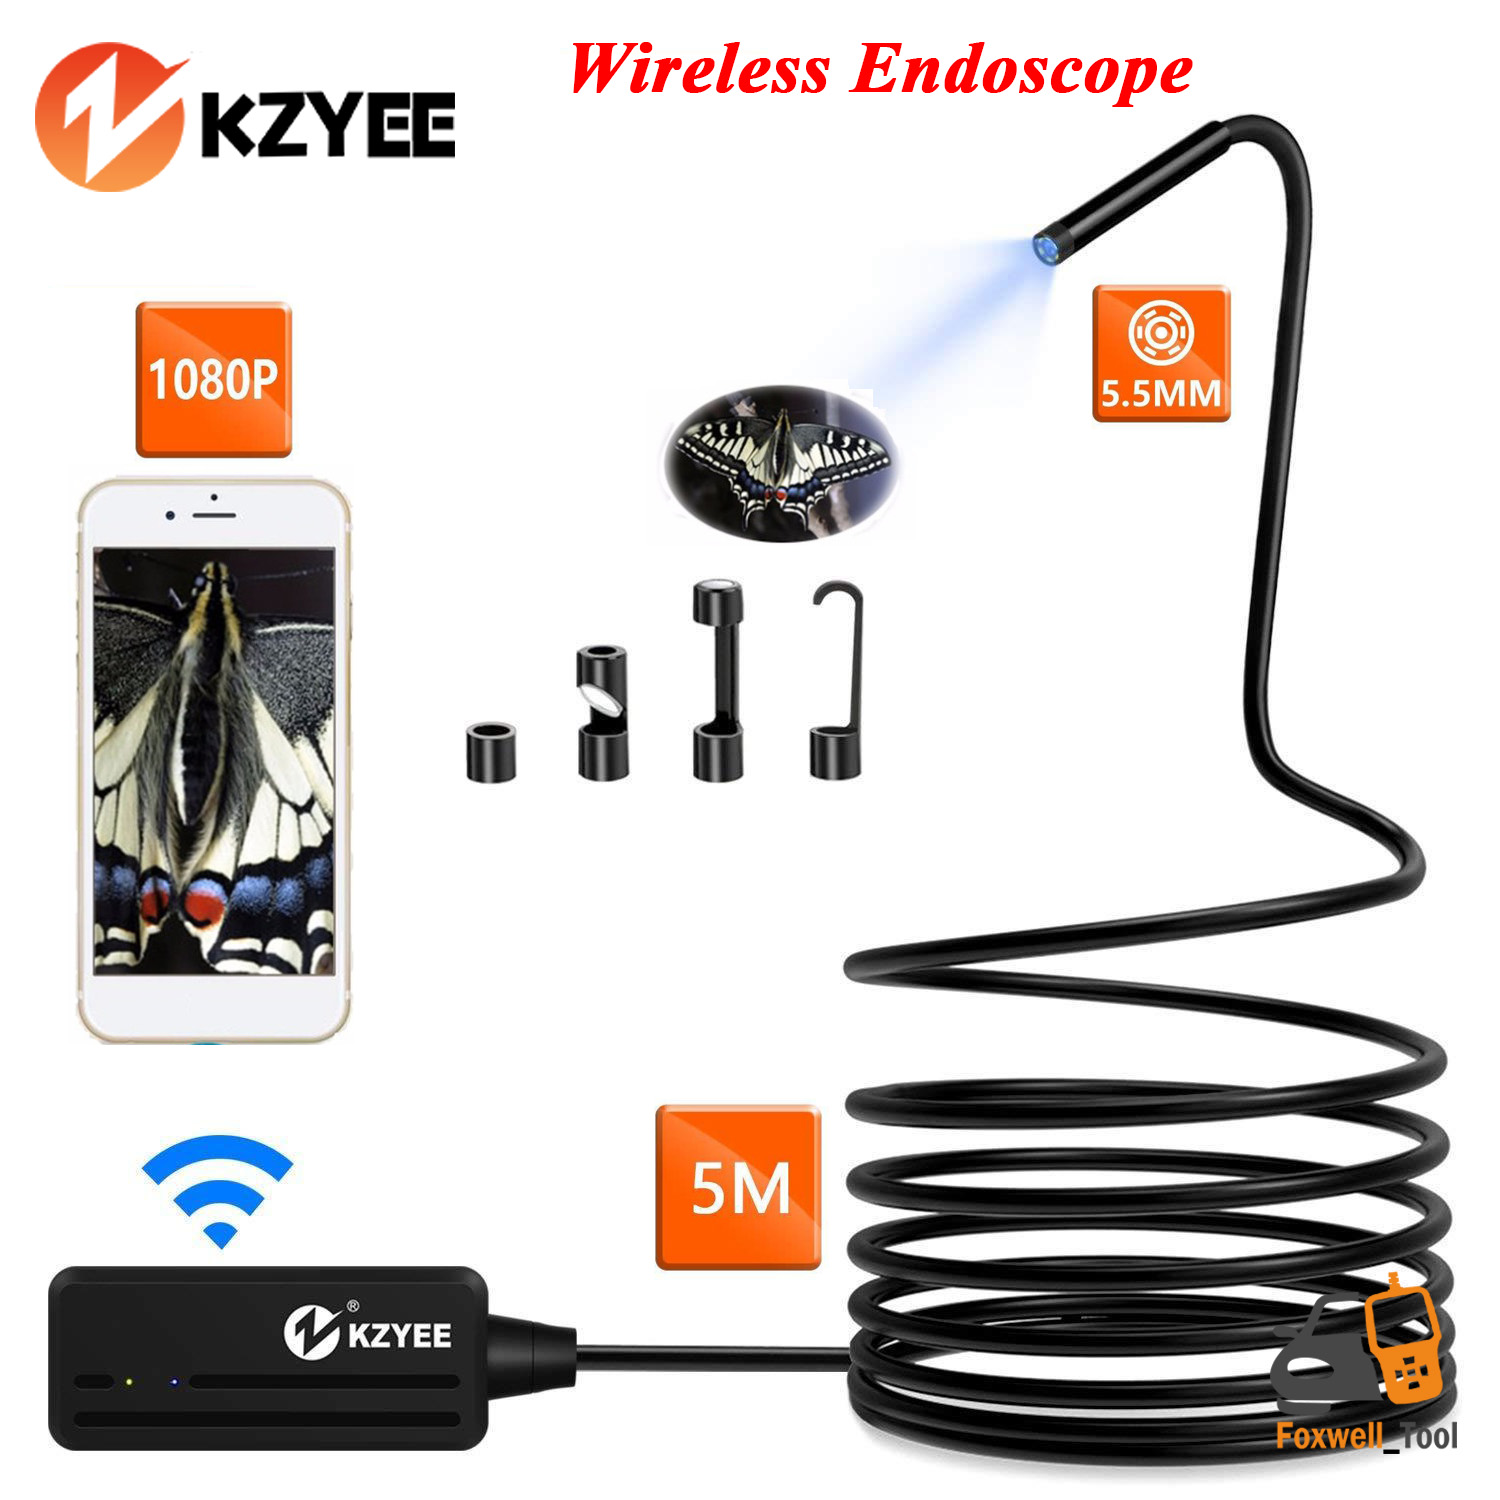 Wireless Inspection Camera Details About Kzyee 5m Semi Rigid Cable Wireless Endoscope Inspection Camera Wifi Android Ios